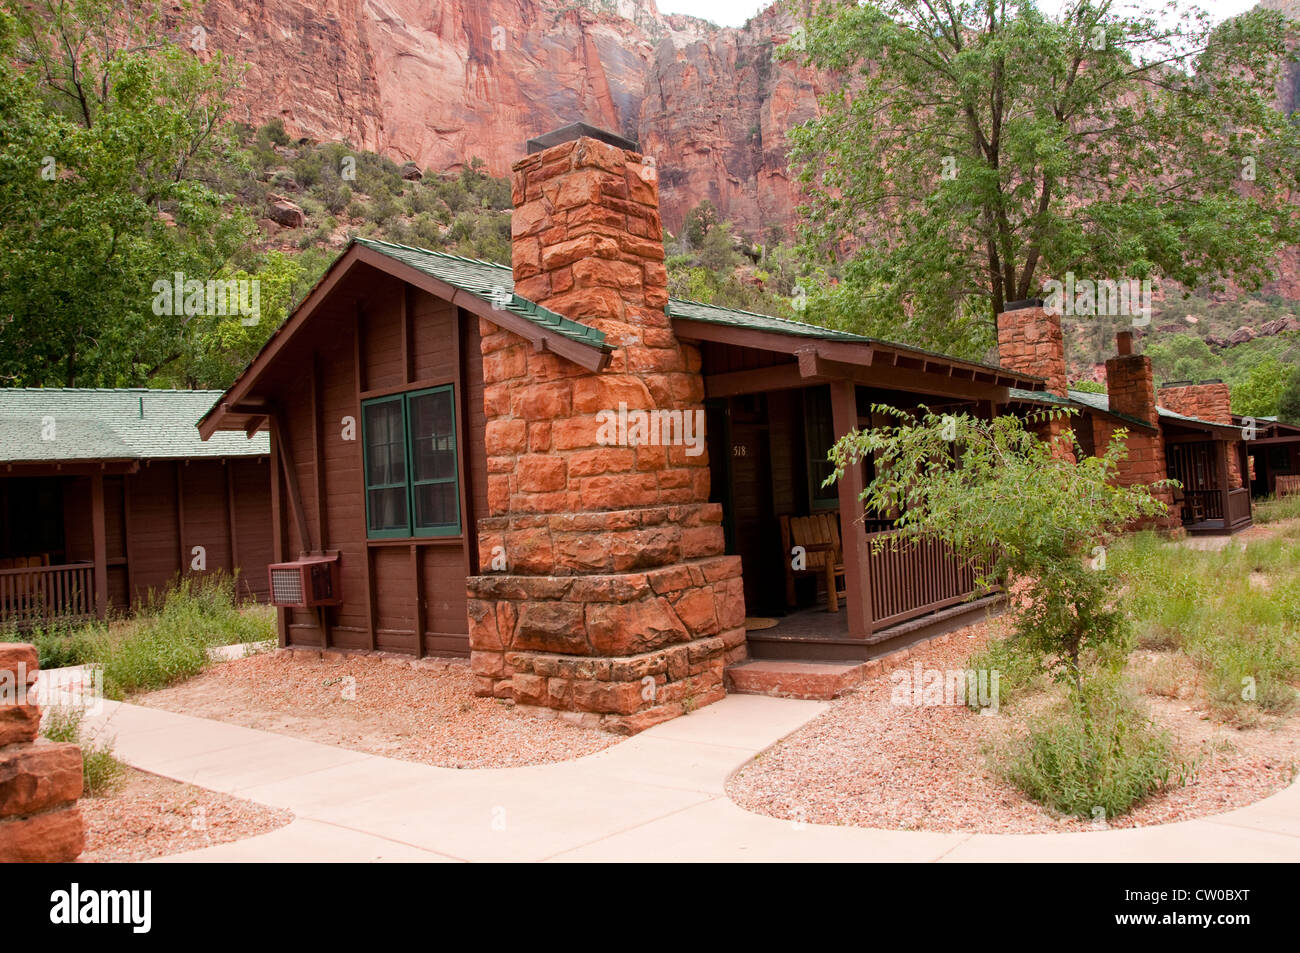 Charmant USA Utah, Zion National Park. The Lodge, Only Lodging In Park, And Its  Historic Cabins